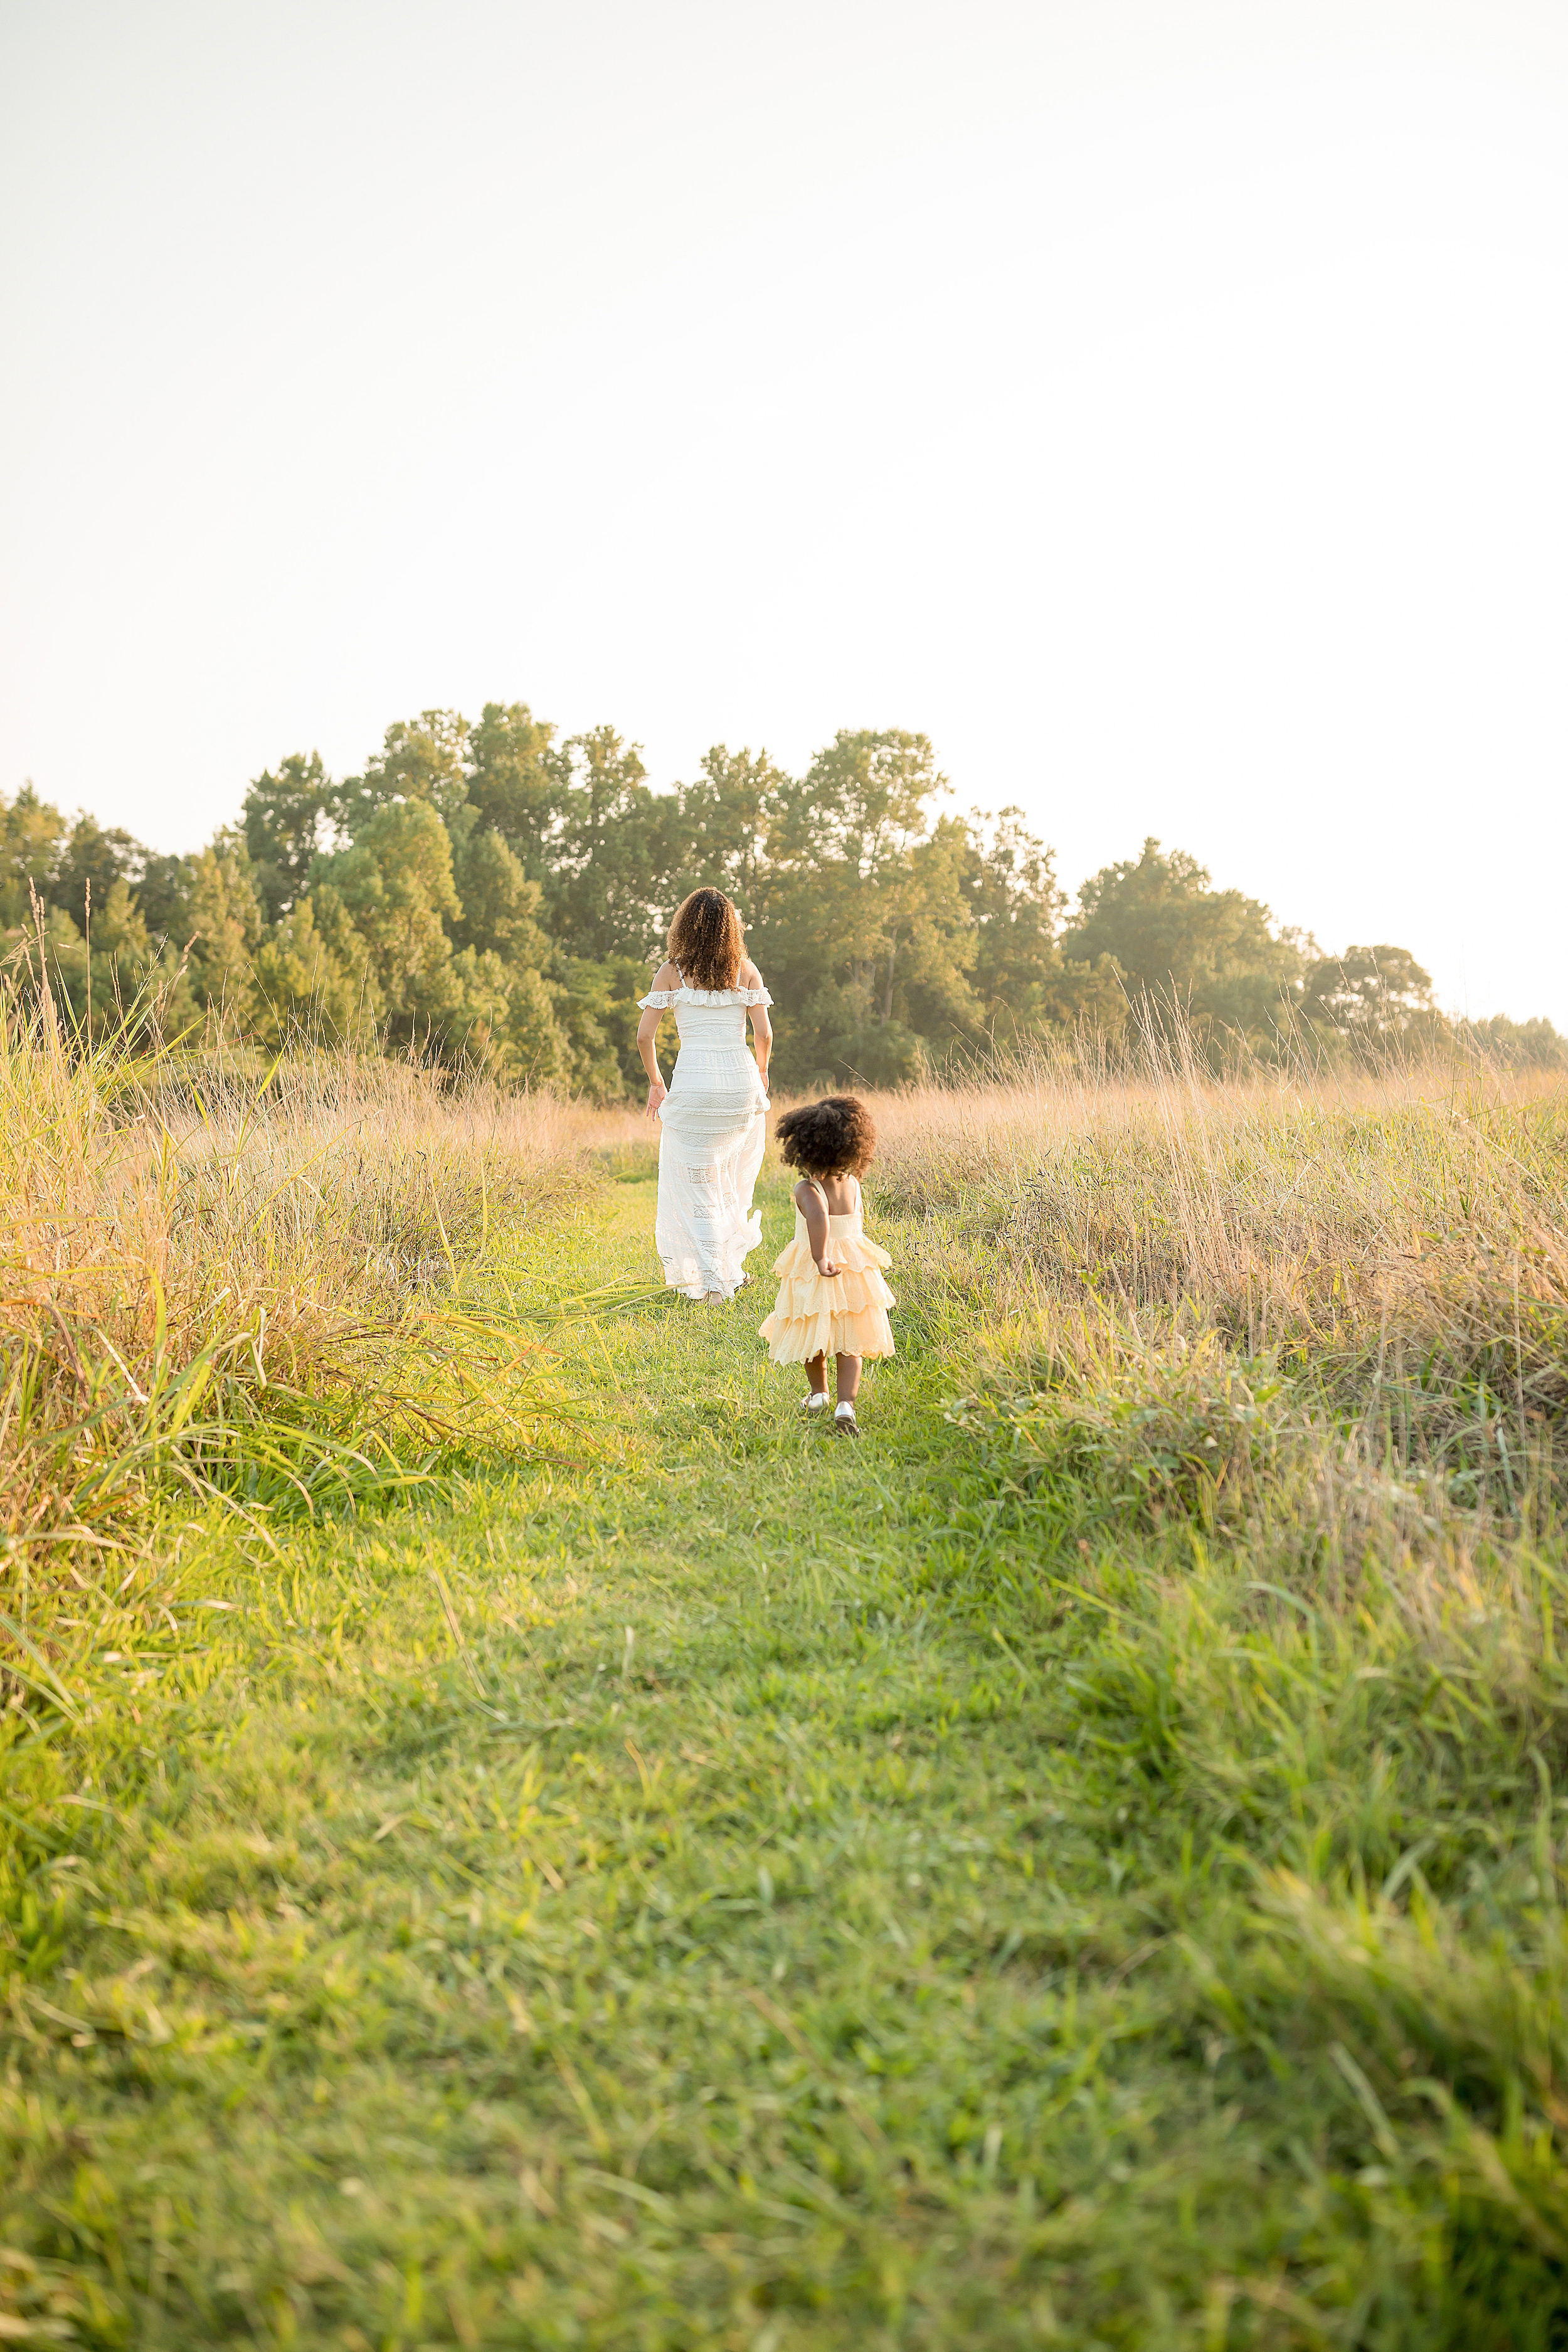 atlanta-midtown-brookhaven-ashford-dunwoody-decatur-lily-sophia-photography-outdoor-sunset-field-mountain-family-photographer-toddler-girl_0403.jpg